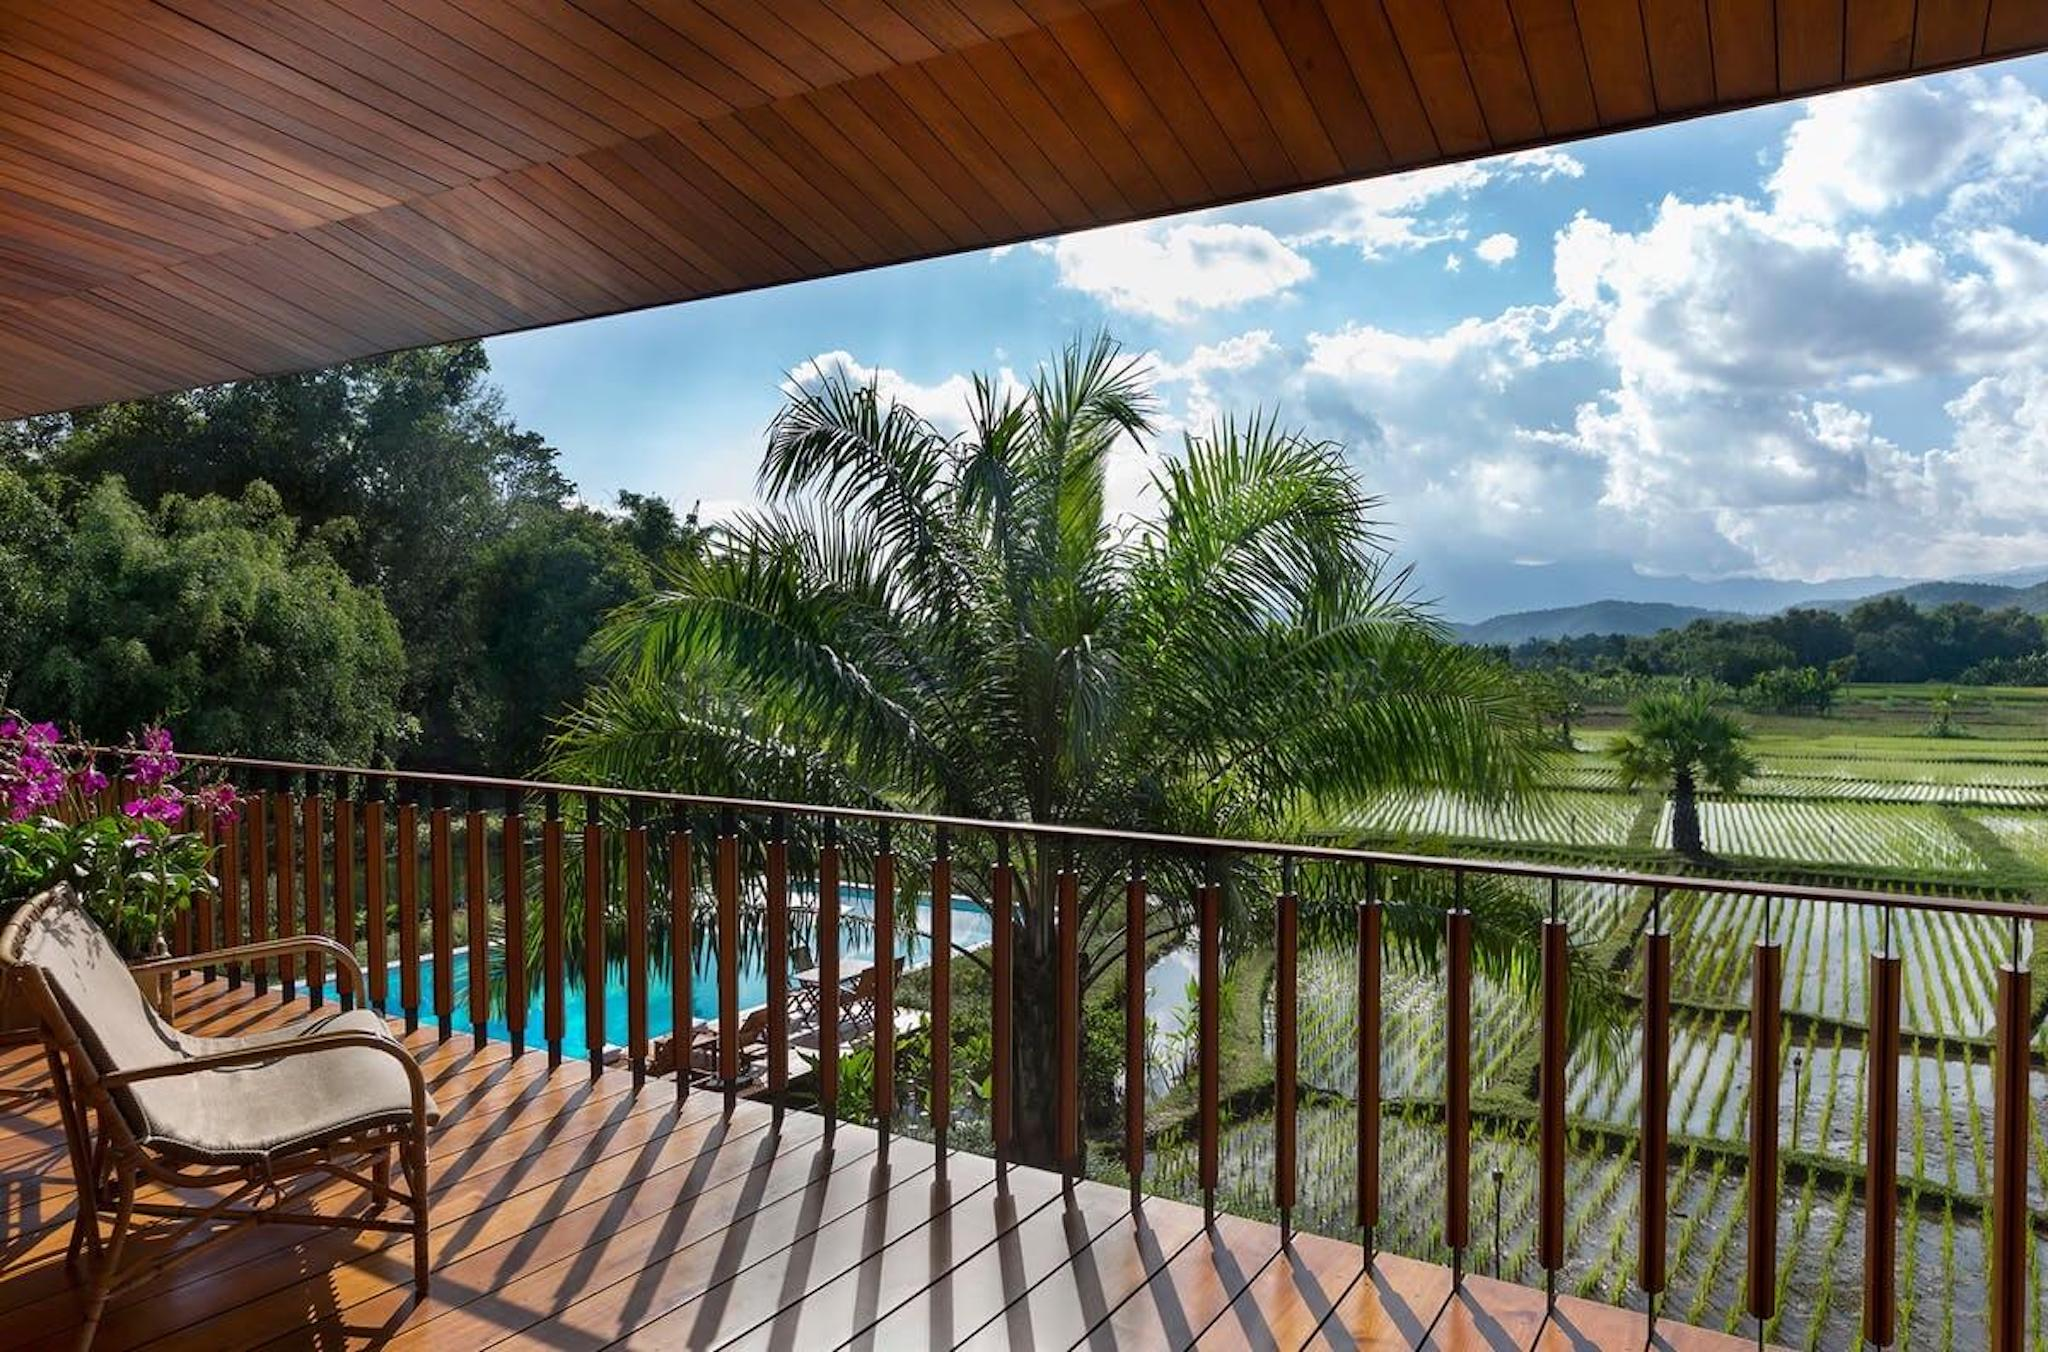 balcony overlooking palm trees and rice paddies